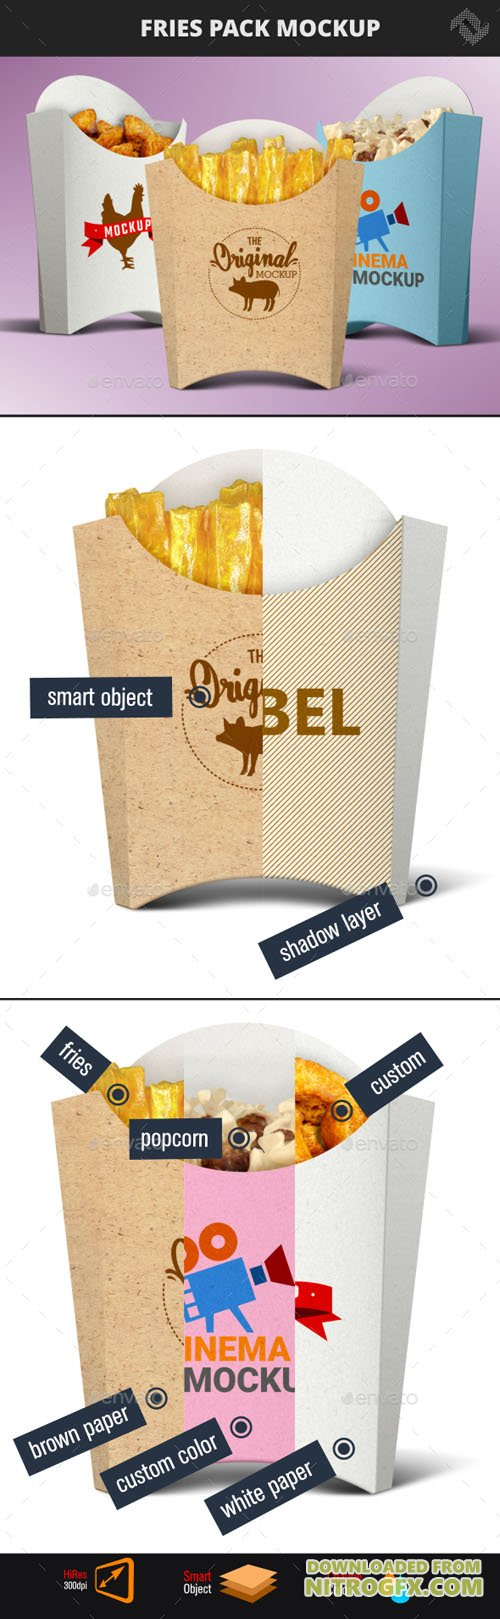 Recycled Paper French Fries Pack Mockup 20704783